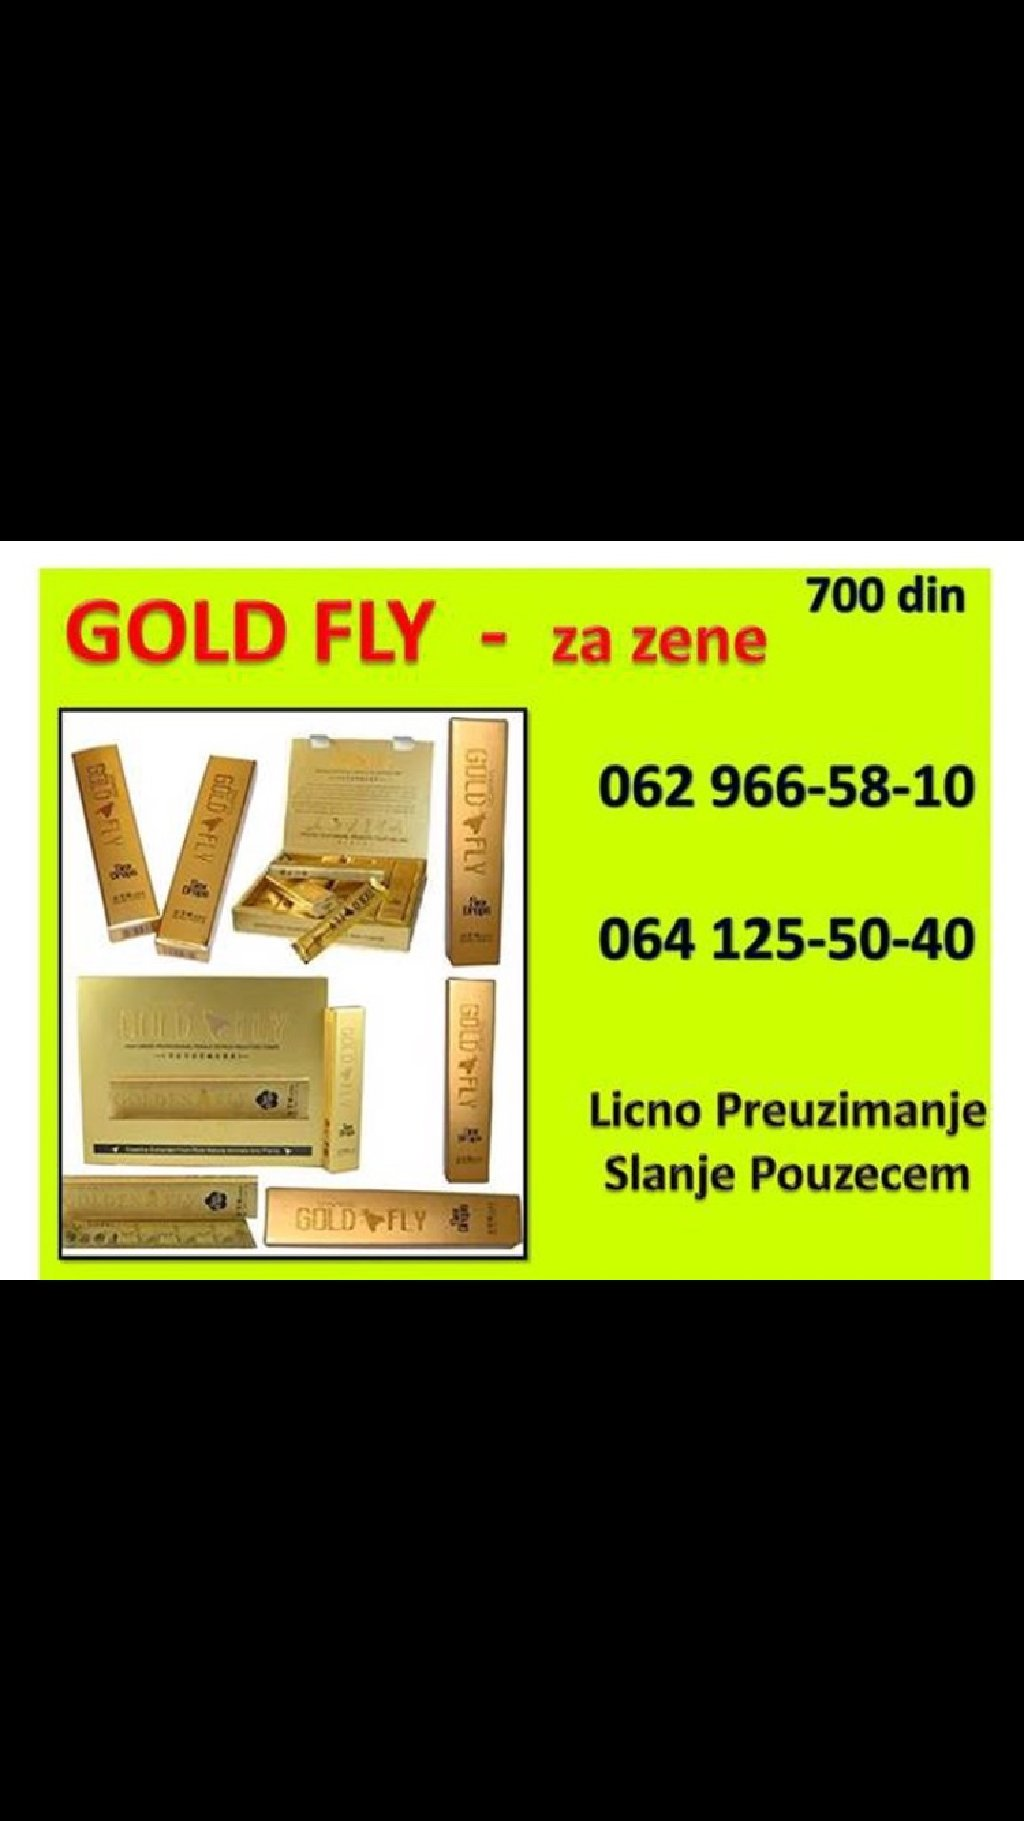 Gold fly!